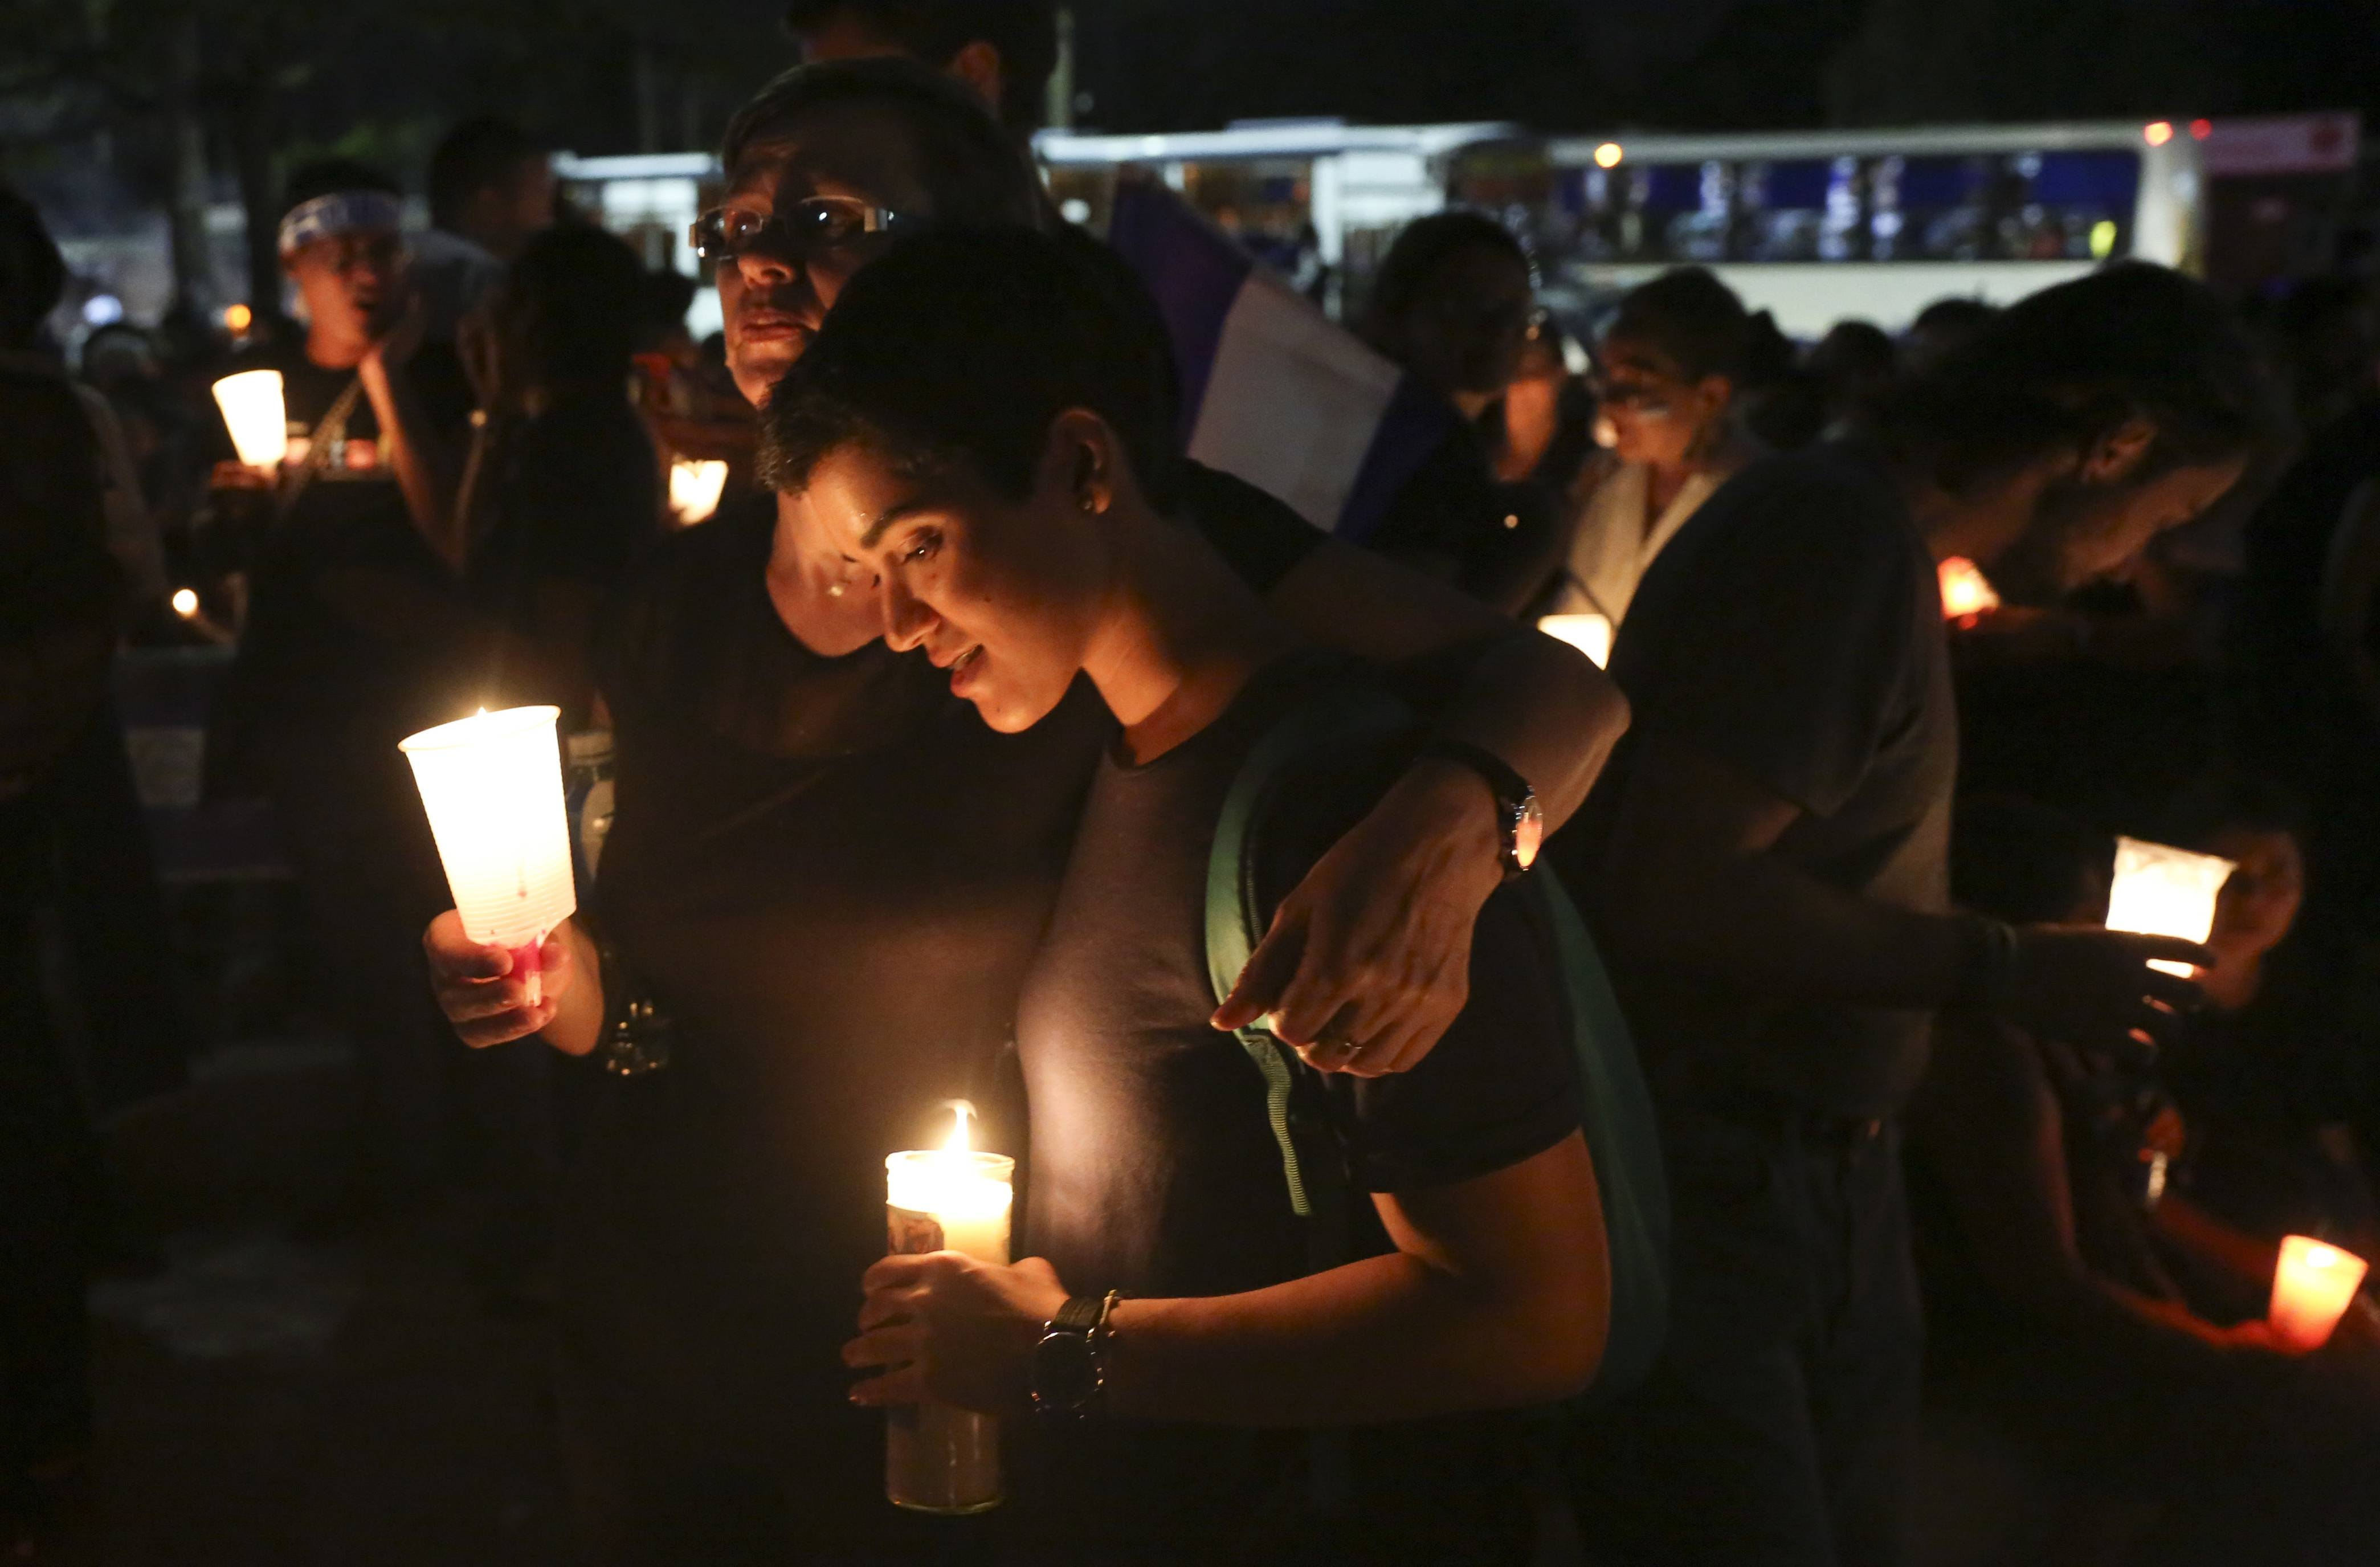 A 2018 candlelight vigil in Managua, Nicaragua, honors a slain journalist. The 2019 World Press Freedom Index shows that Nicaragua fell 24 places from the previous year's list to 114th. The U.S. fell three places to 48th.